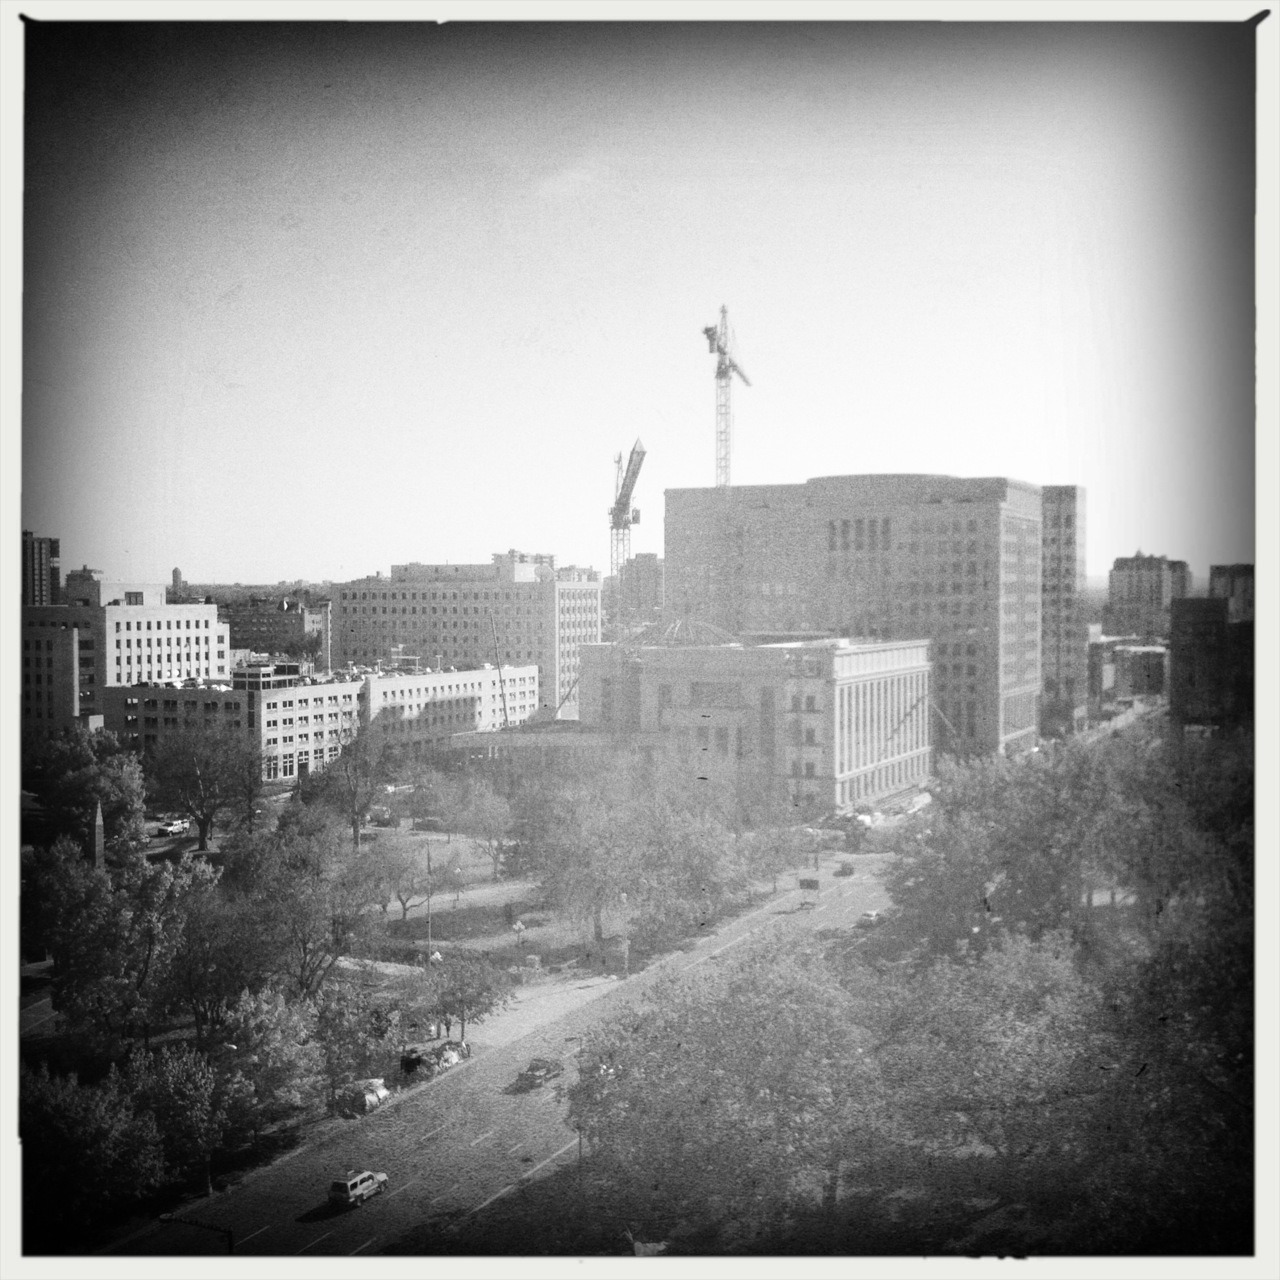 The Cranes, 11/9 Taken with Hipstamatic, Buckhorst H1 Lens, AO BW Film, No Flash.